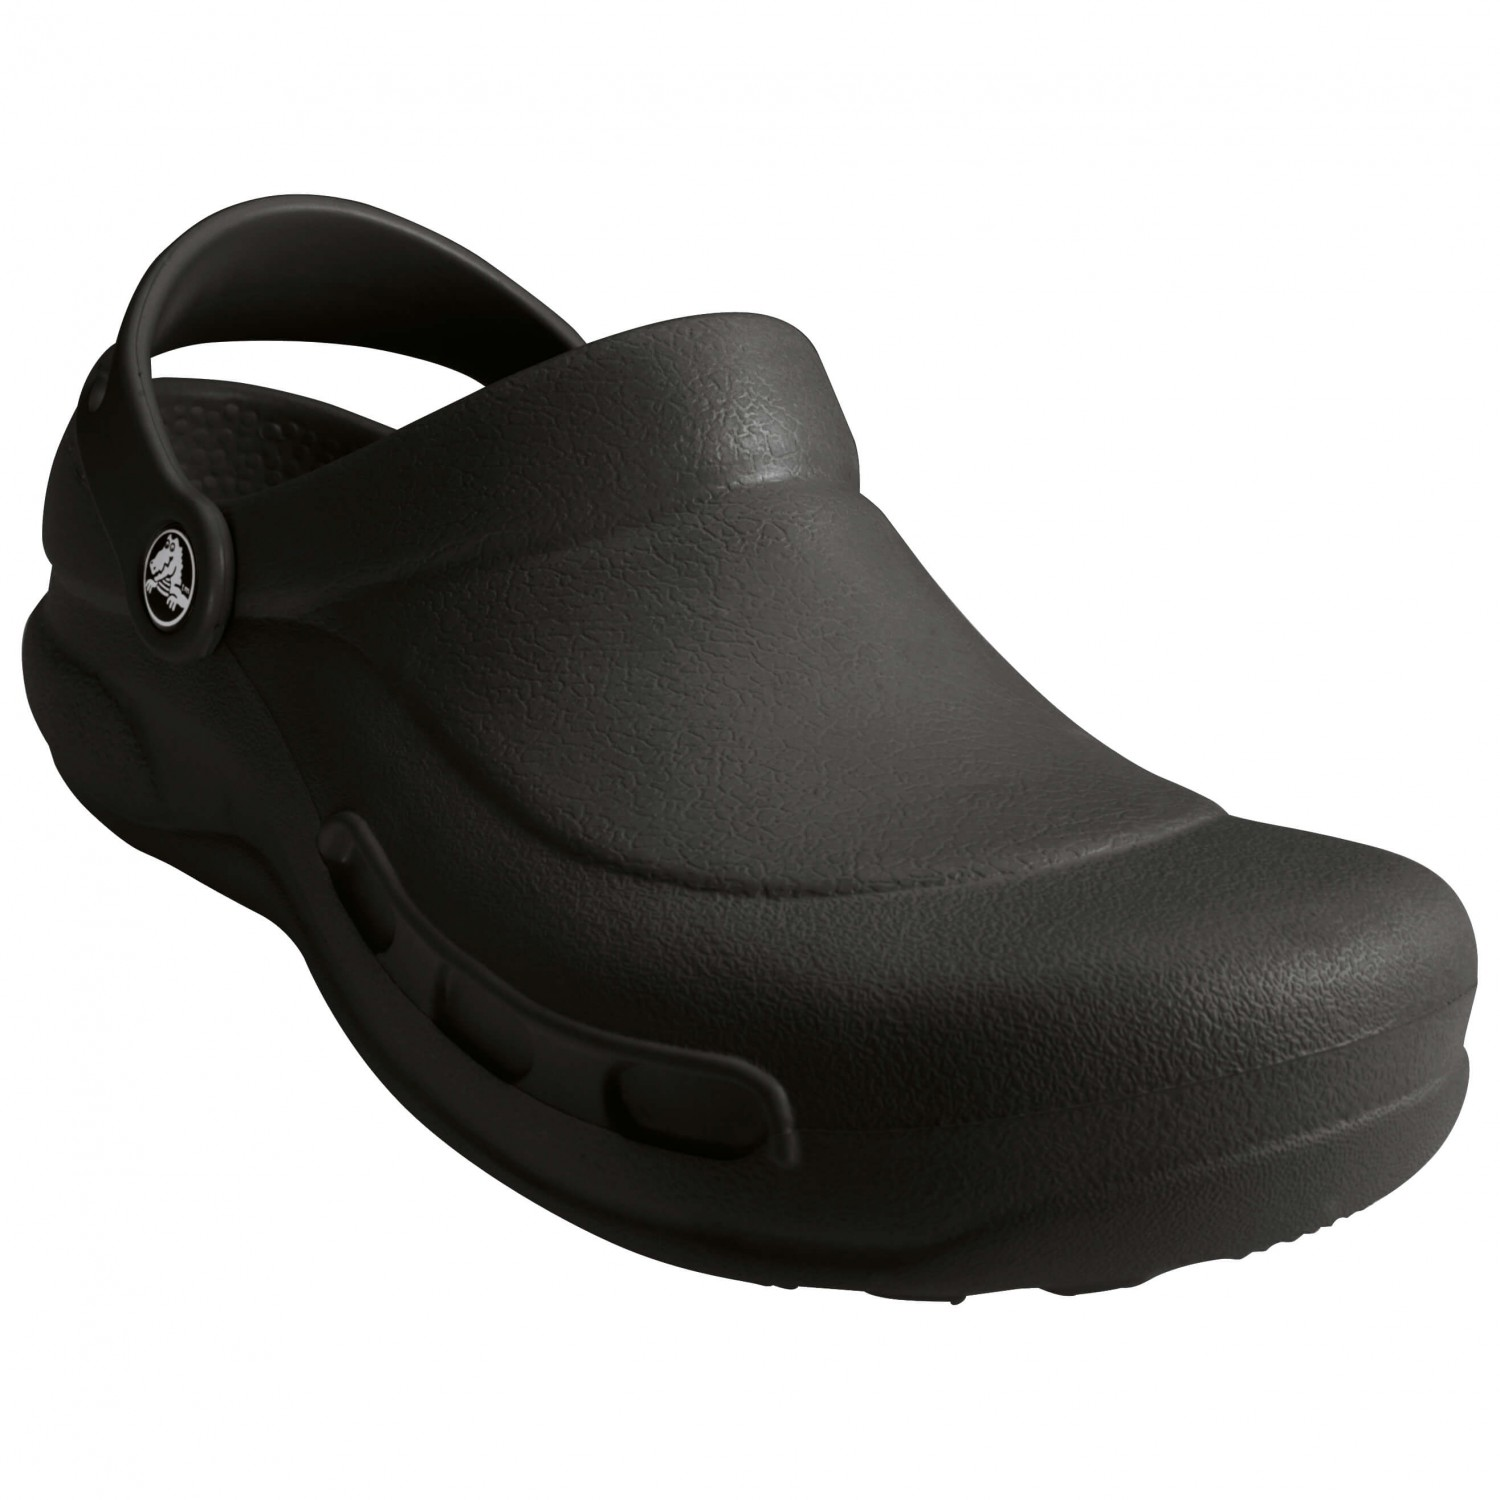 Where Can I Buy Crocs Work Shoes